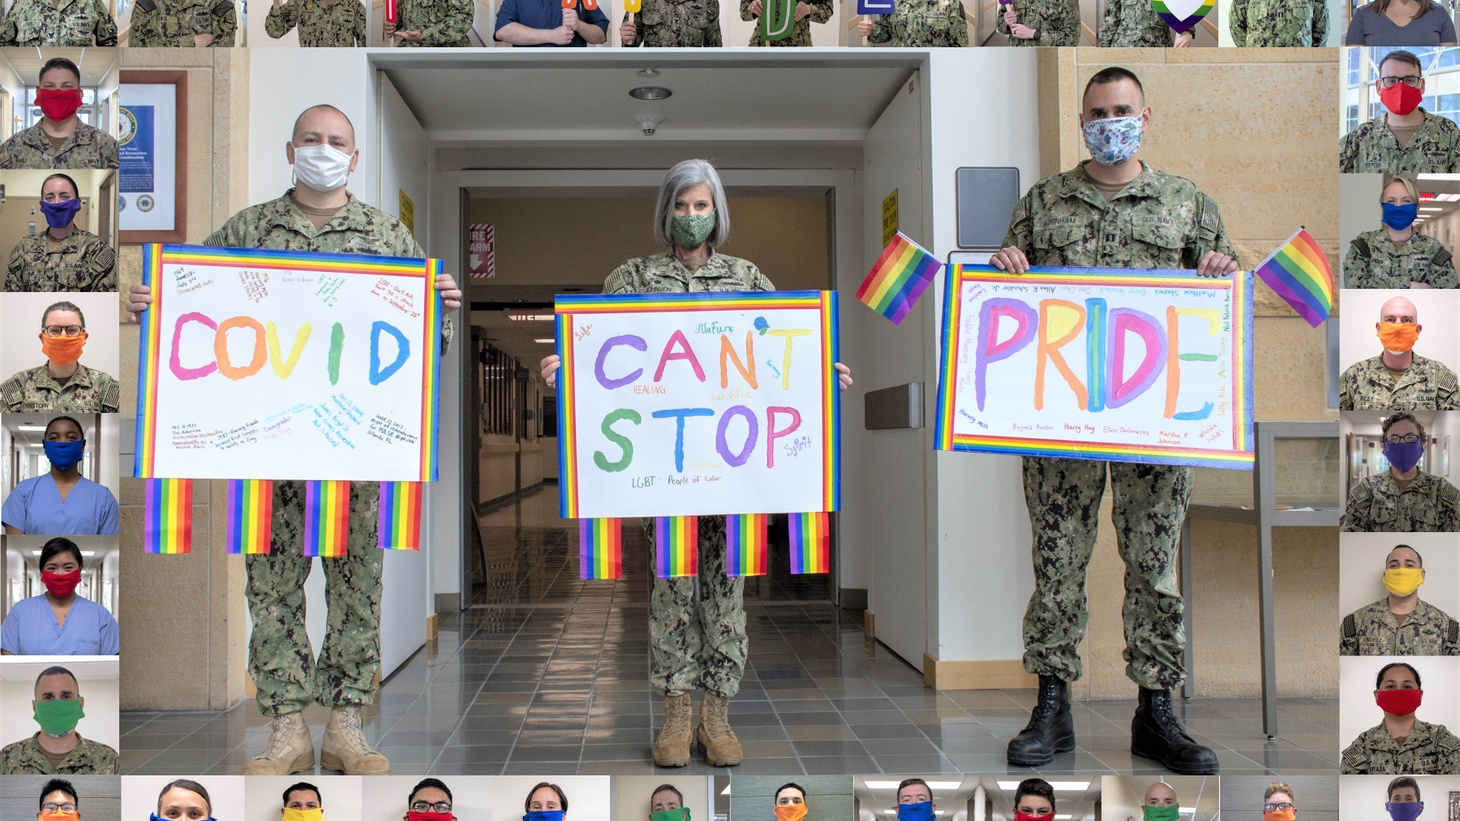 """U.S. military members hold a three-part sign that says """"COVID can't stop pride."""""""